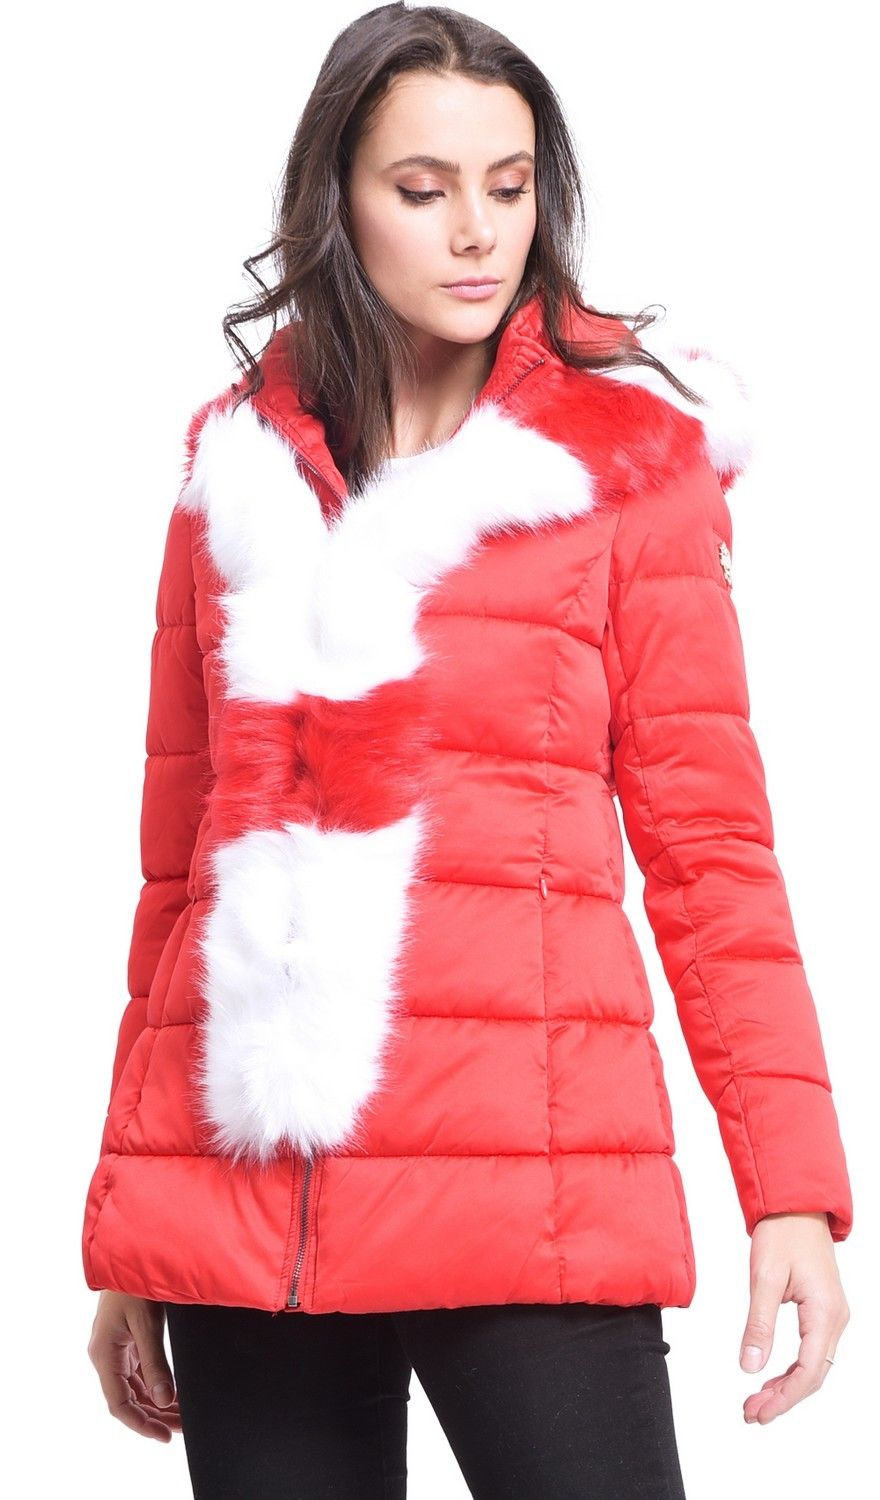 Assuili Mid-Length Puffer Jacket with Faux Fur Panel in Red